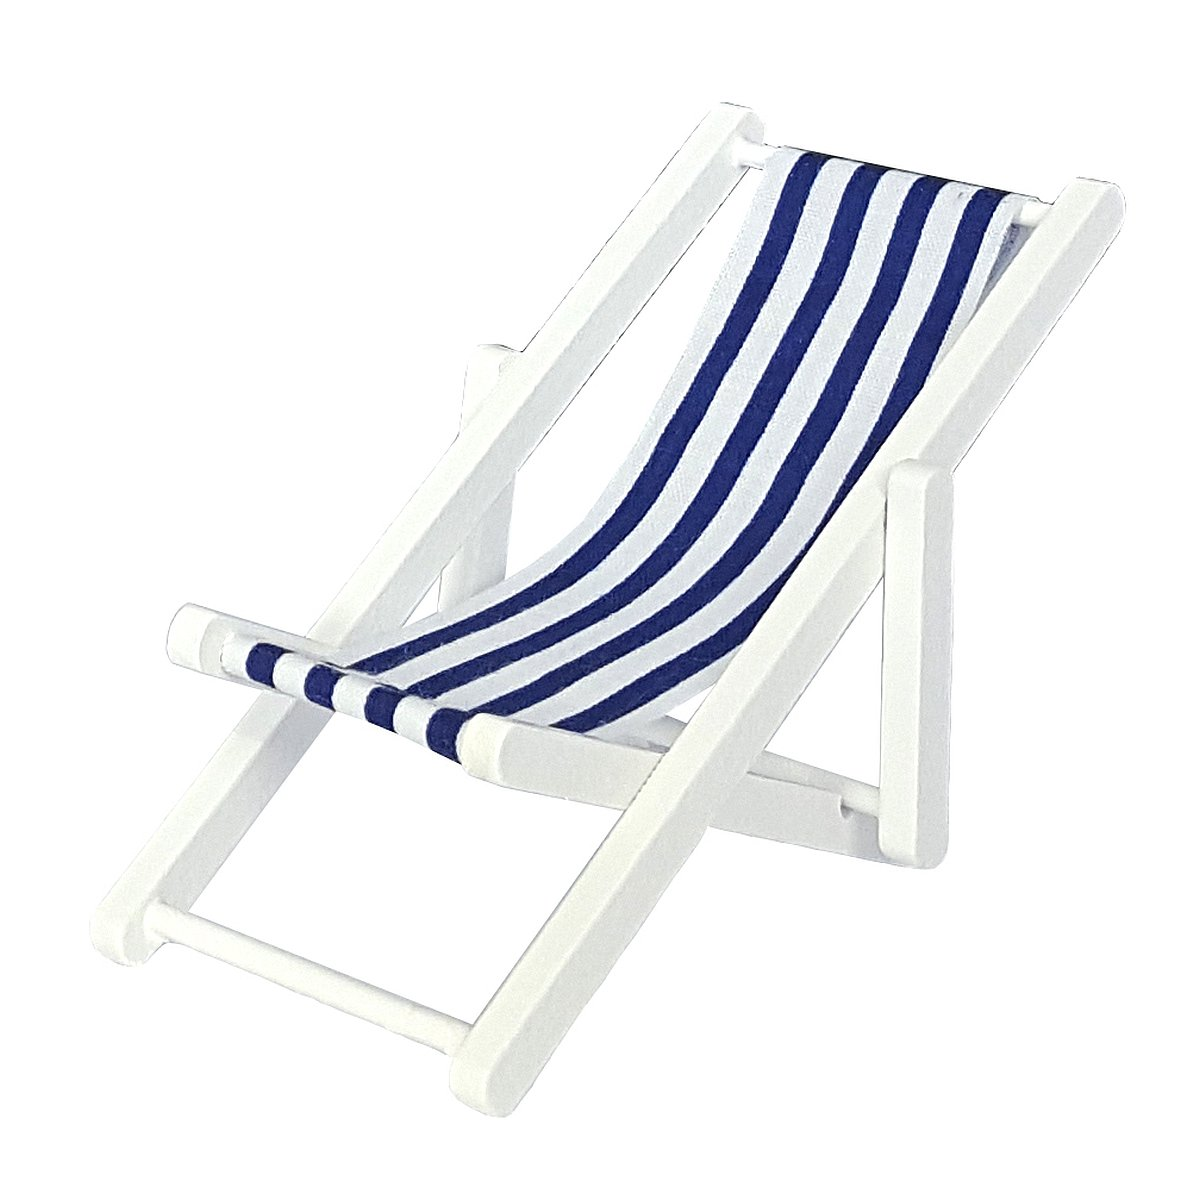 Strand deck chair, white 完成品・デッキチェア